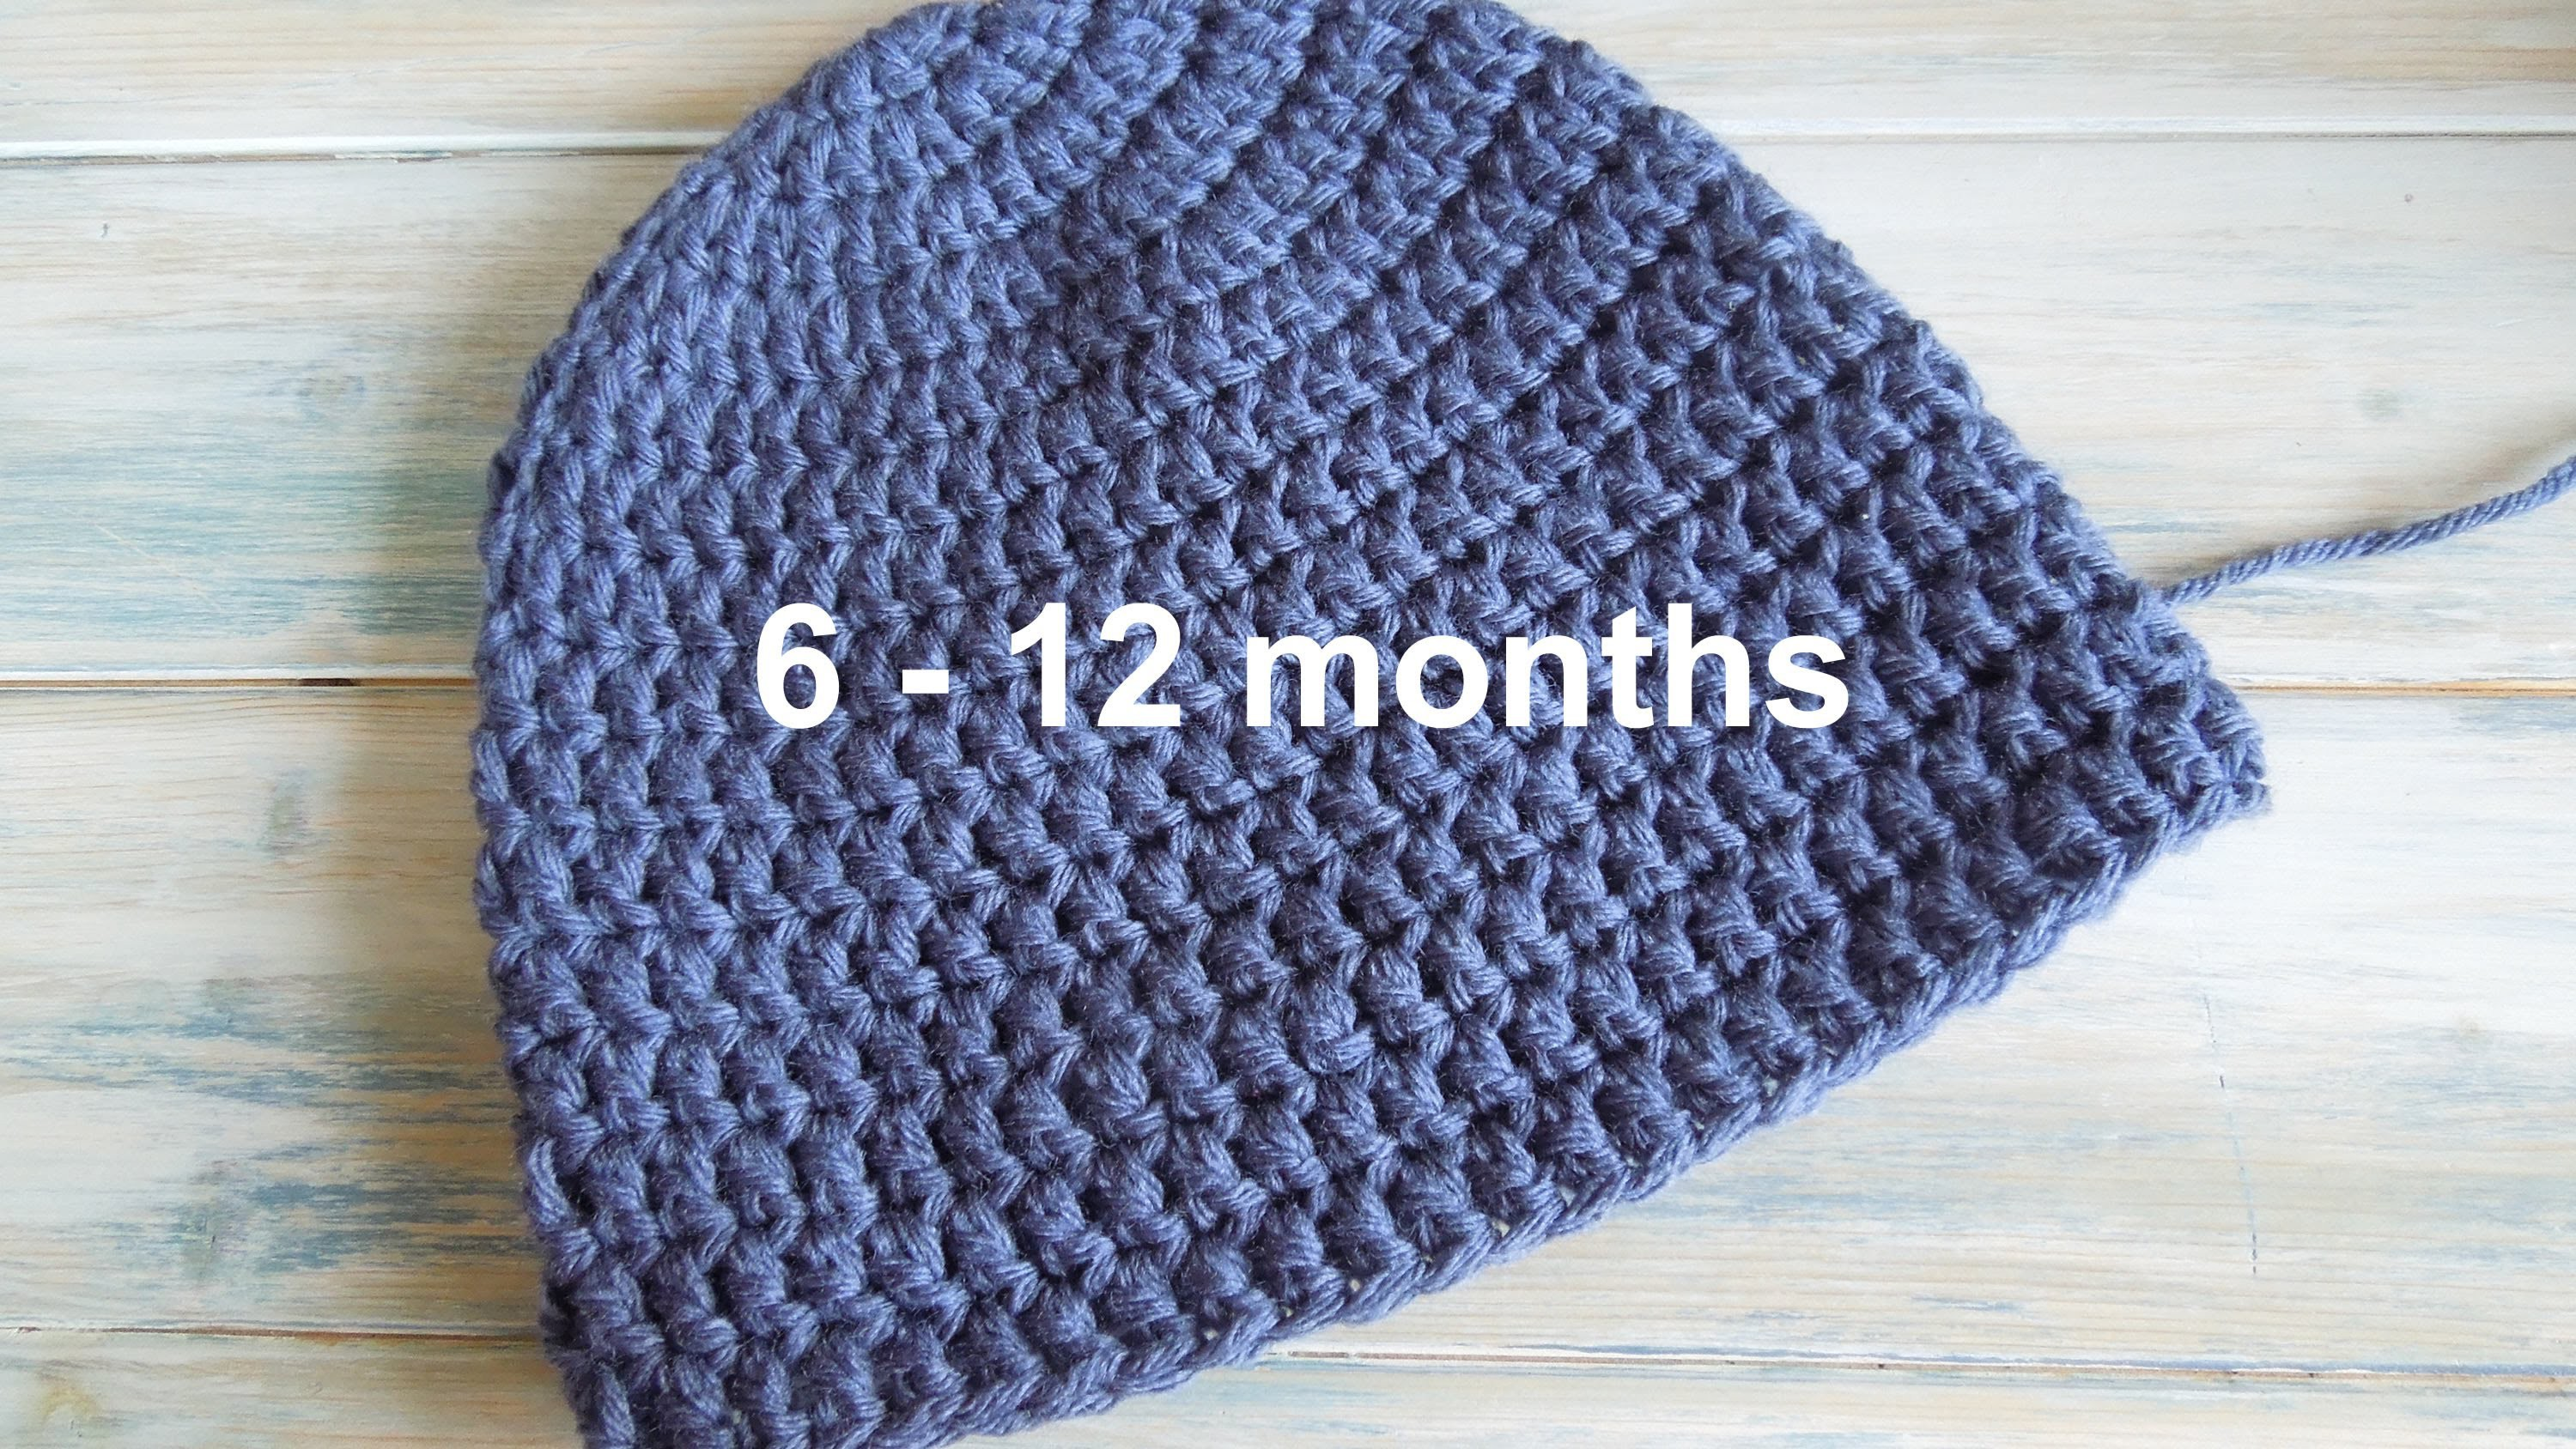 (crochet) How To - Crochet a Simple Baby Beanie for 6-12 months